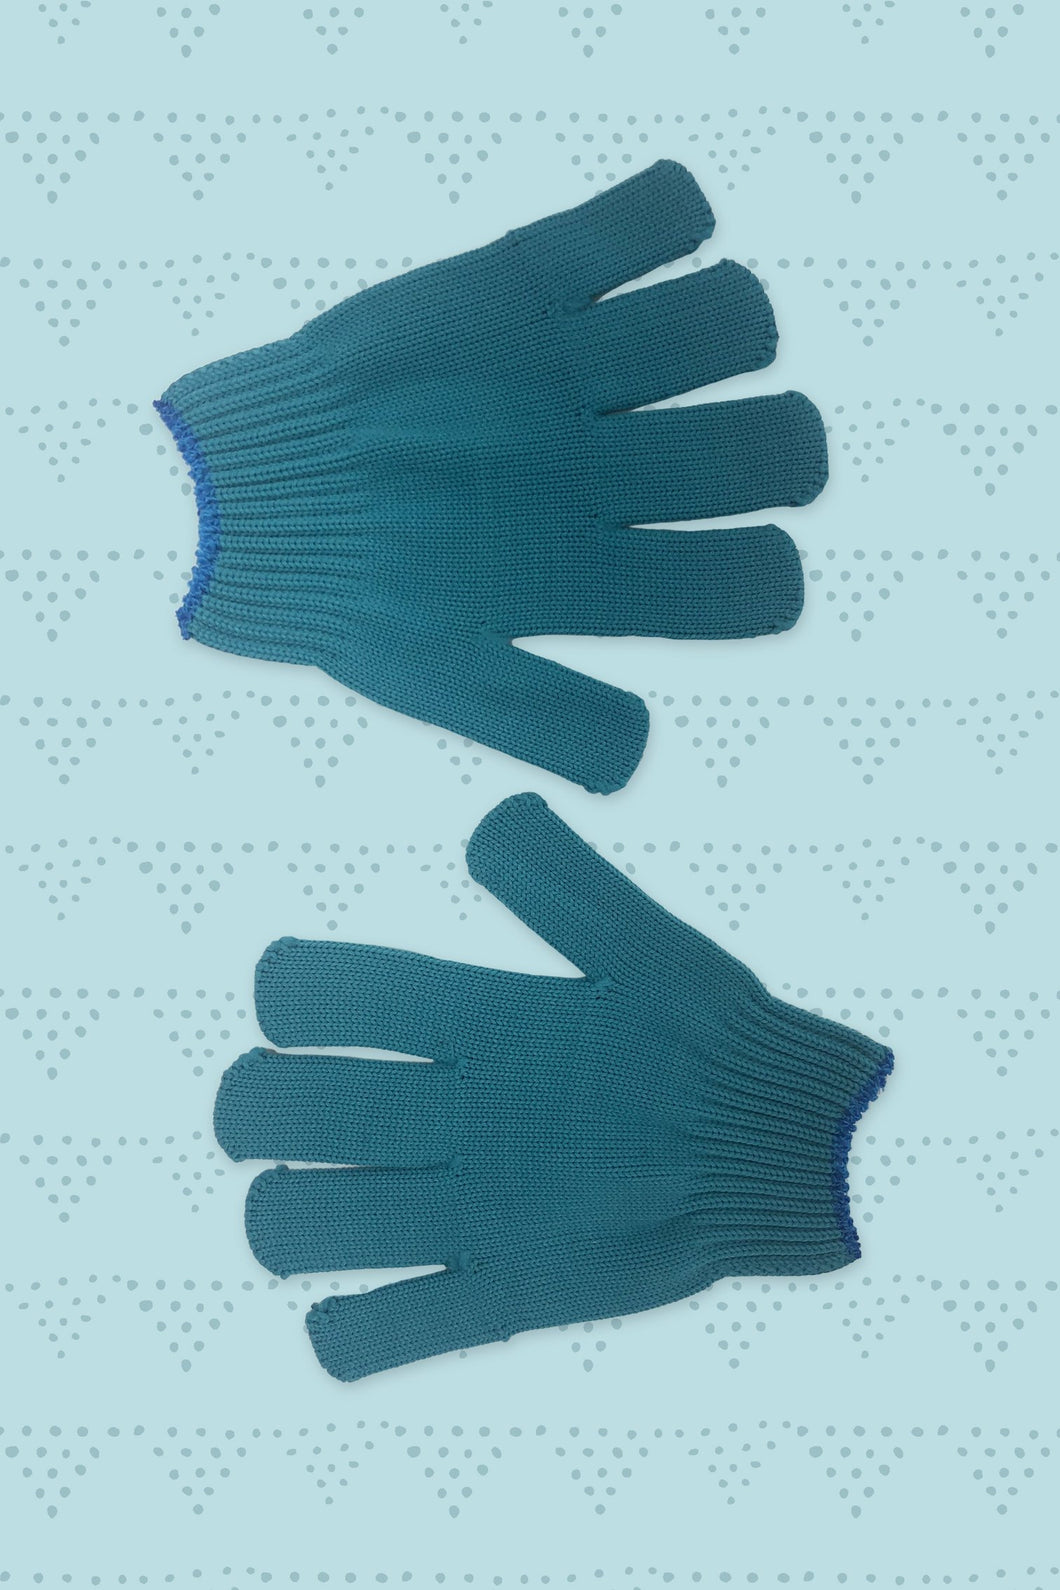 Kids Gloves Reusable & Washable Play Gloves - Holiday Gift